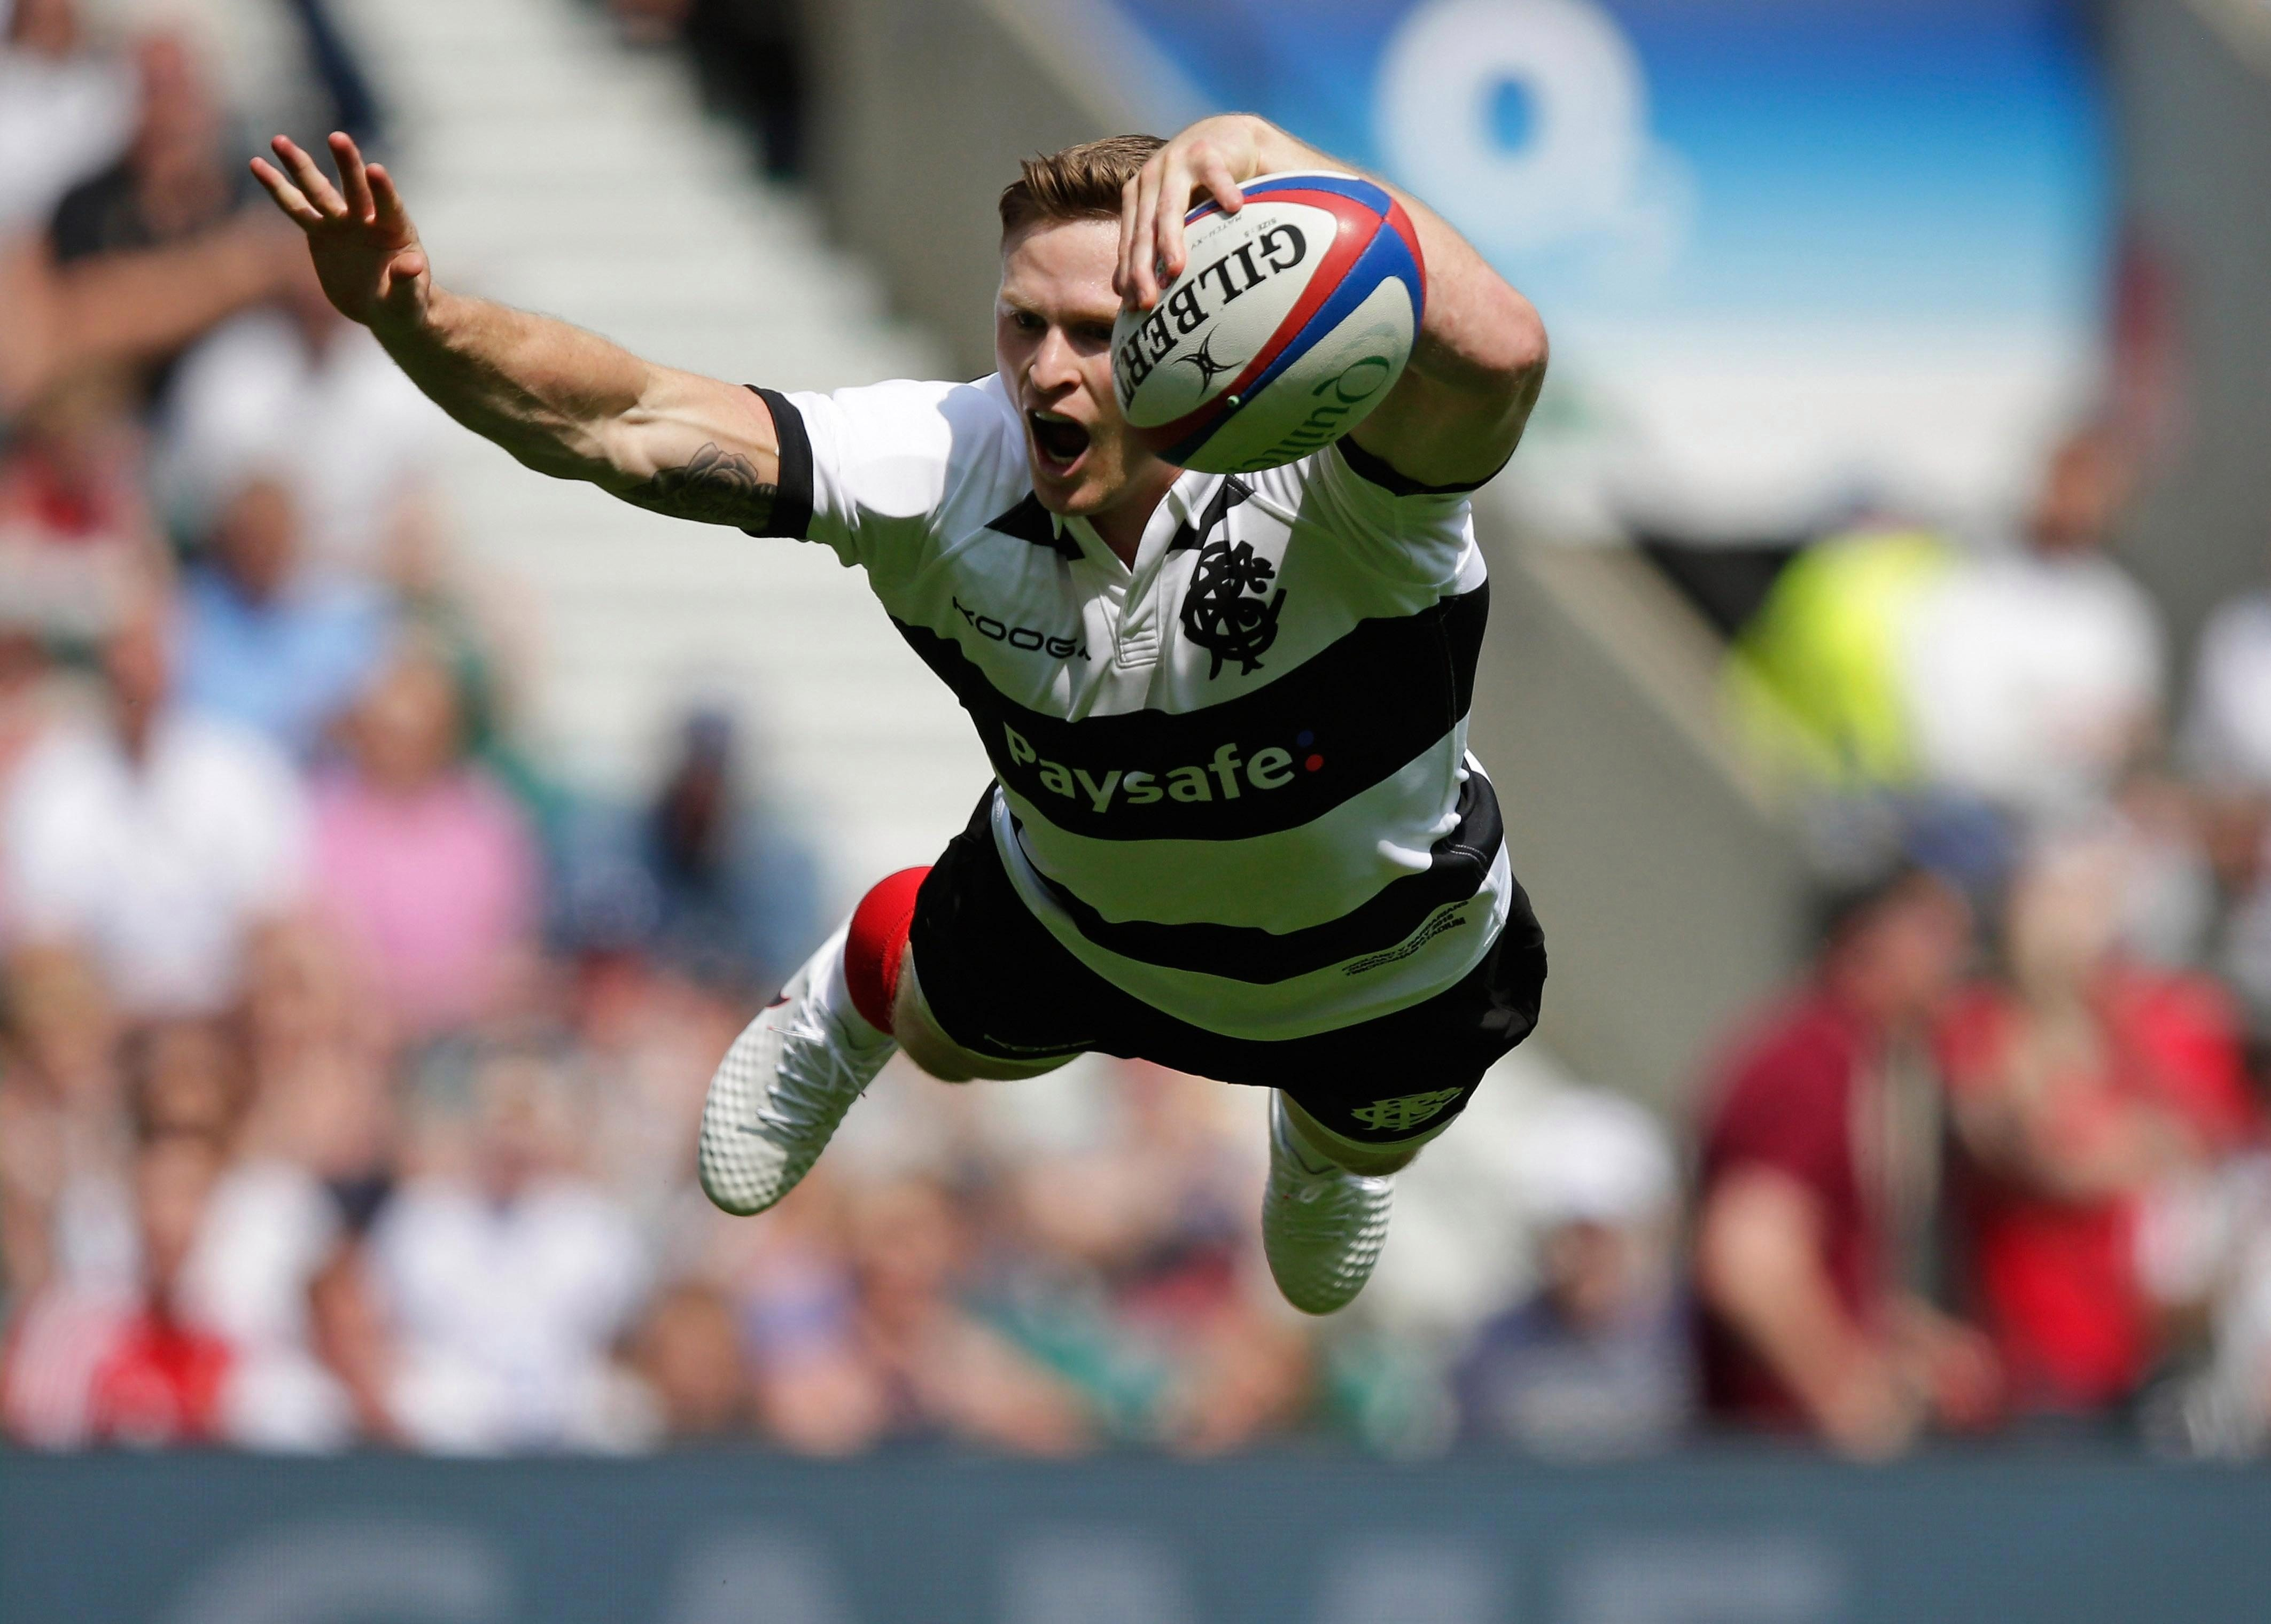 Ashton scored a hat-trick for the Barbarians against England in May